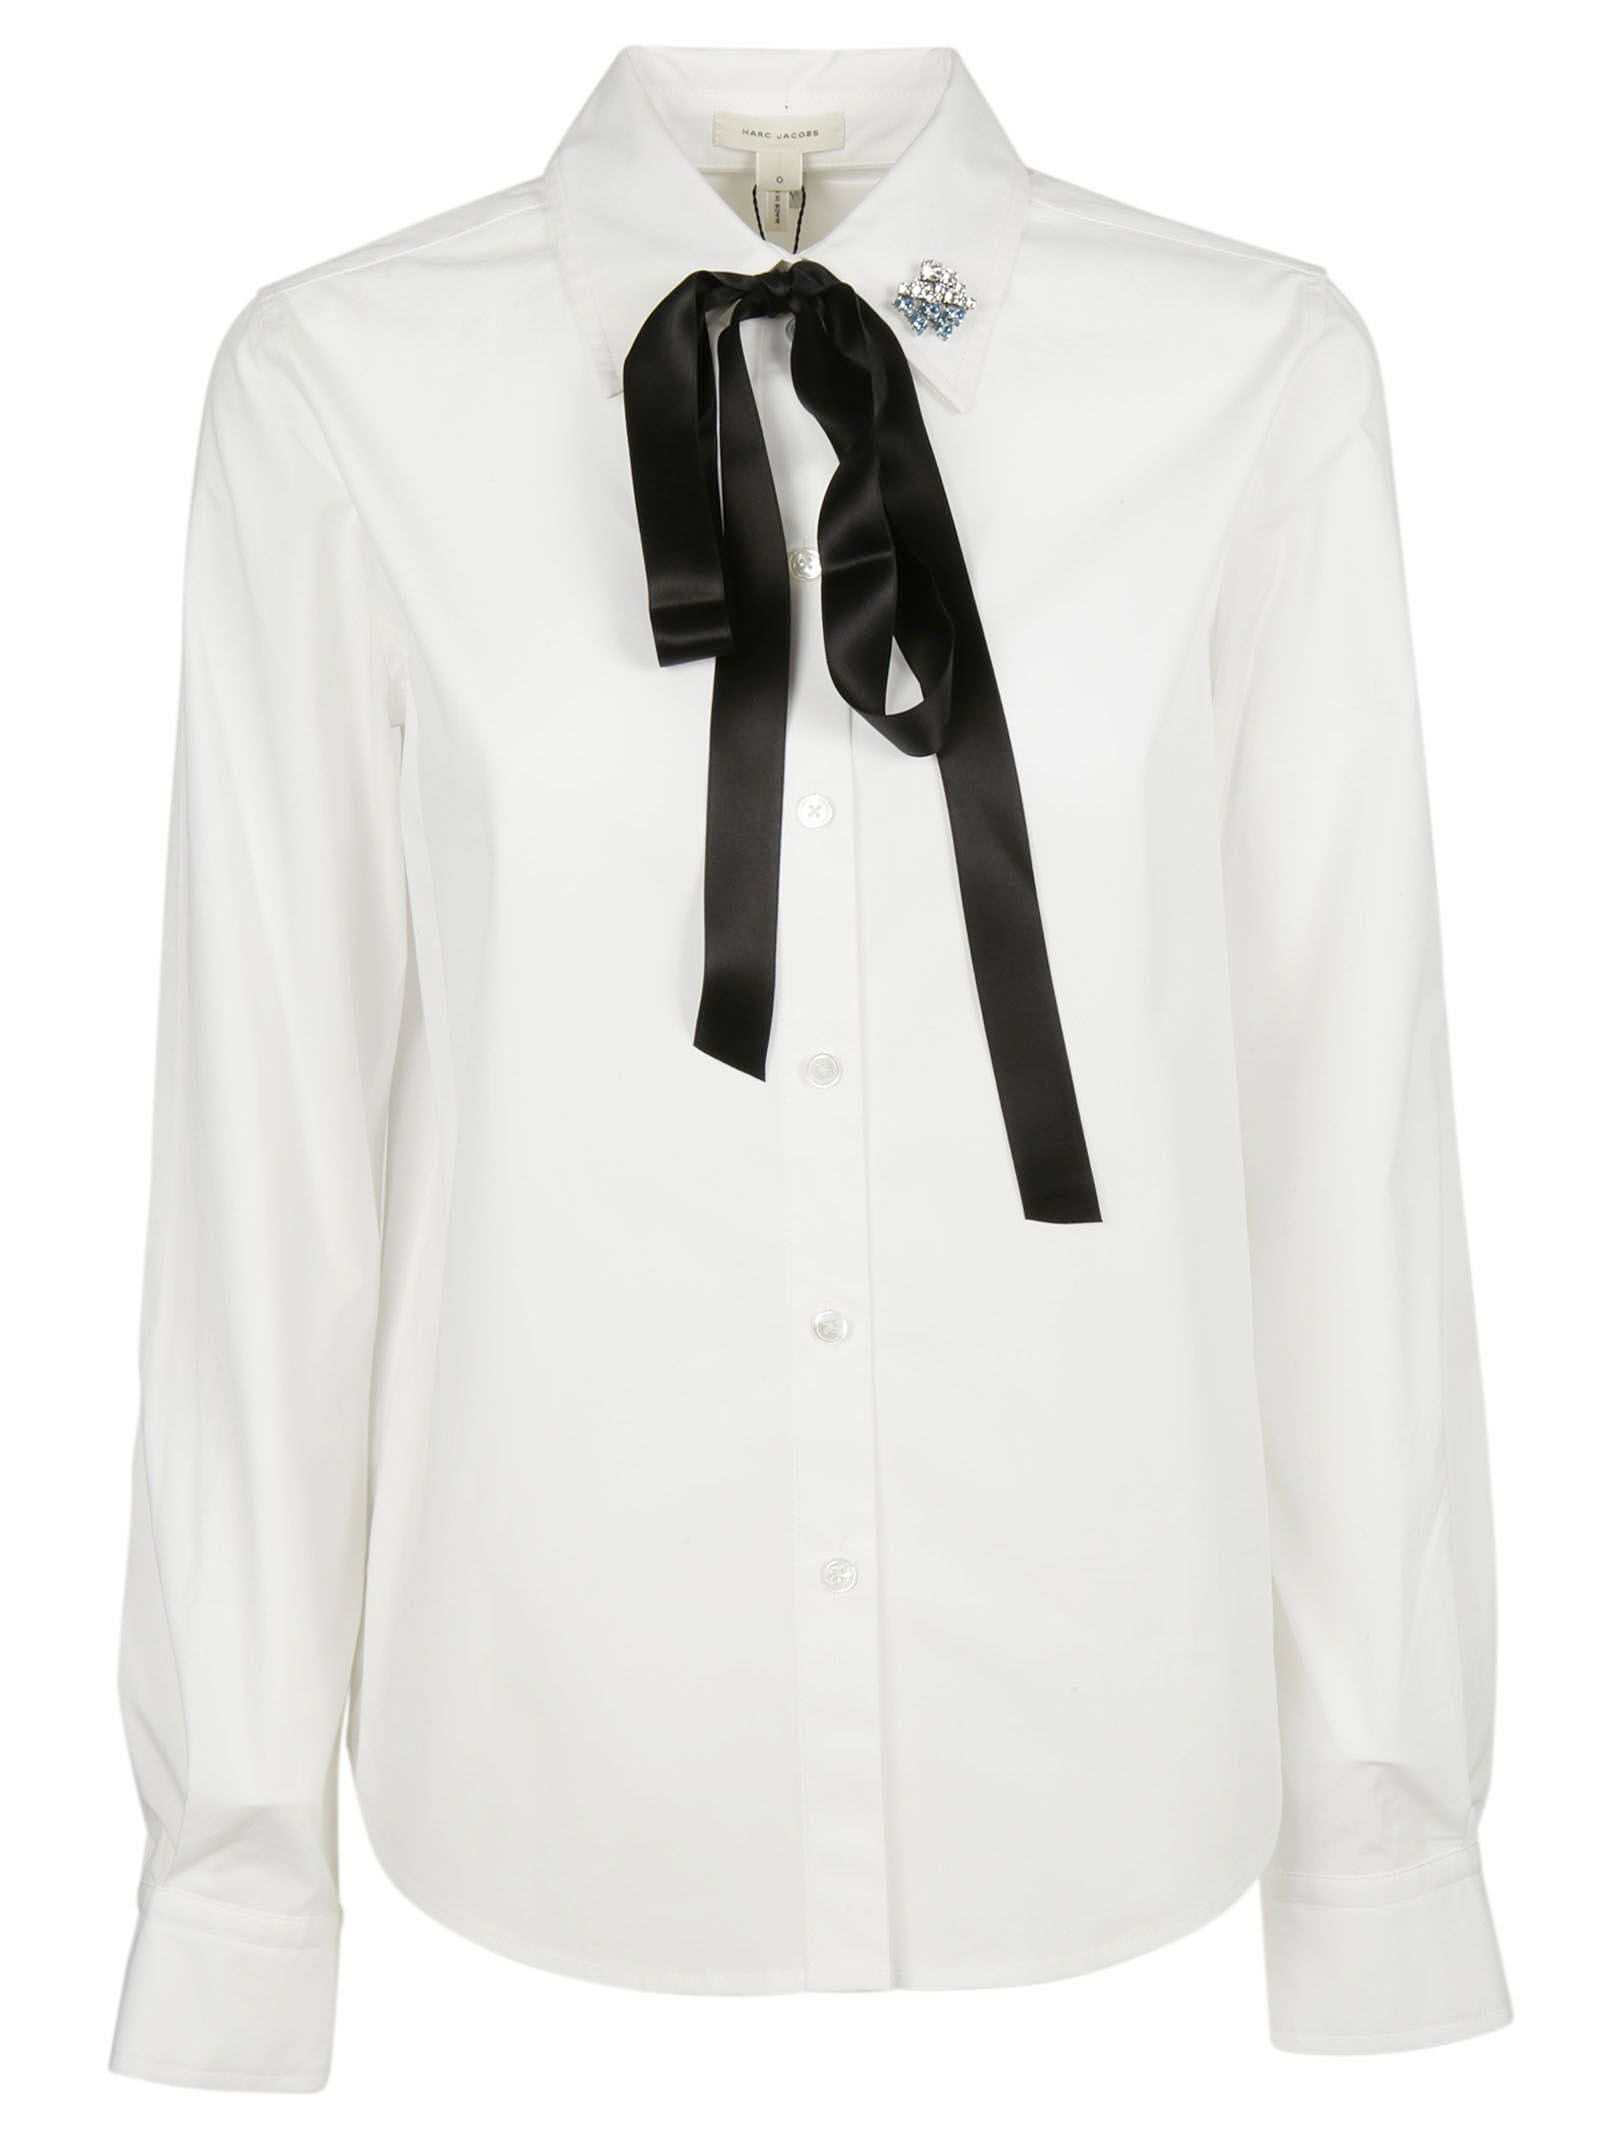 marc jacobs female marc jacobs embellished pin pussybow shirt